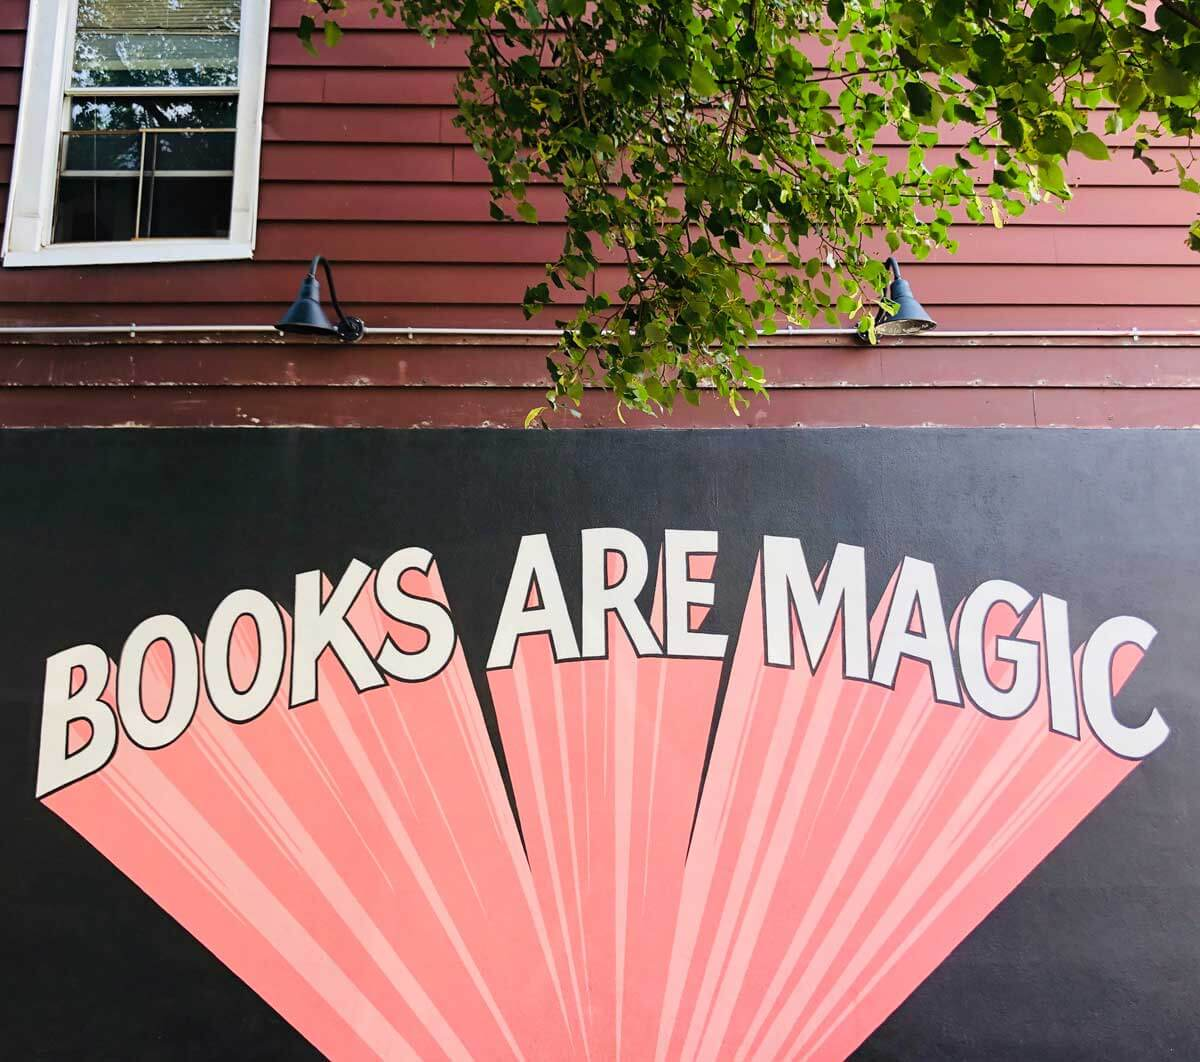 Books-are-Magic-in-Carroll-Gardens-Brooklyn